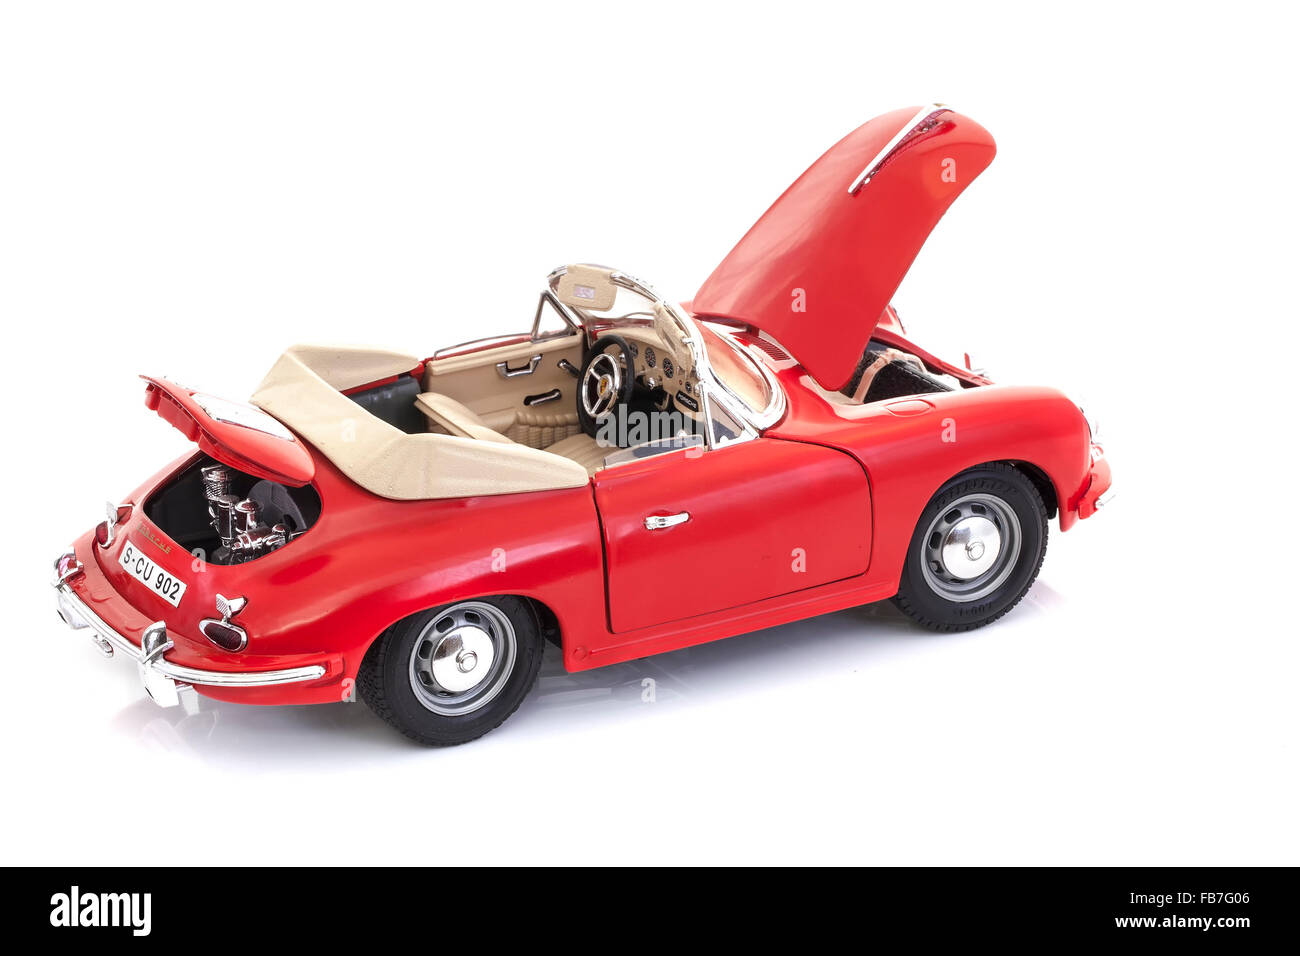 Scale Model Porsche 356 Speedster on a white background - Stock Image